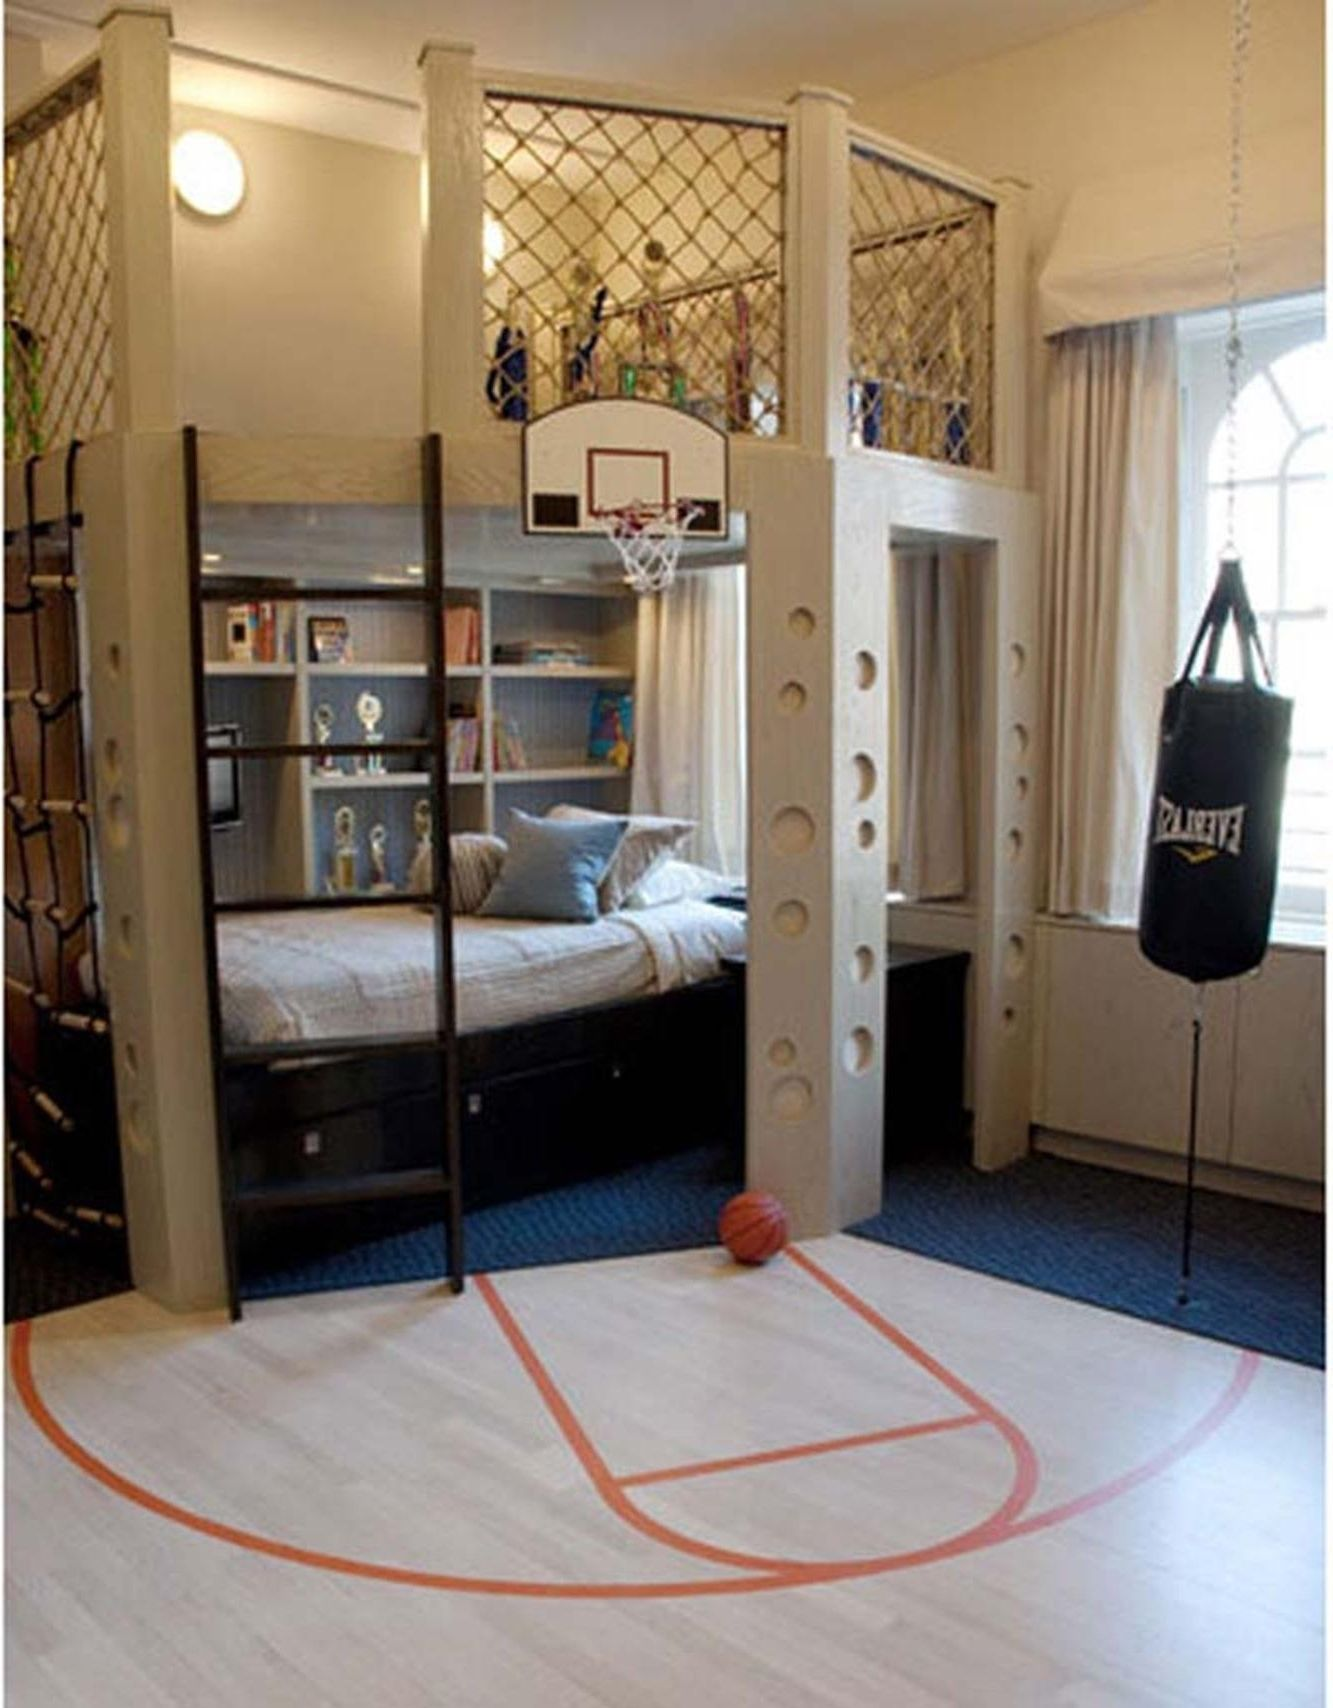 Nice Basketball Is Always Fun For The Gang, So We Took The Liberty Of Adding Two  Smalls Basketball Hoops In The Plan With A Small Basketball Court Running  ...